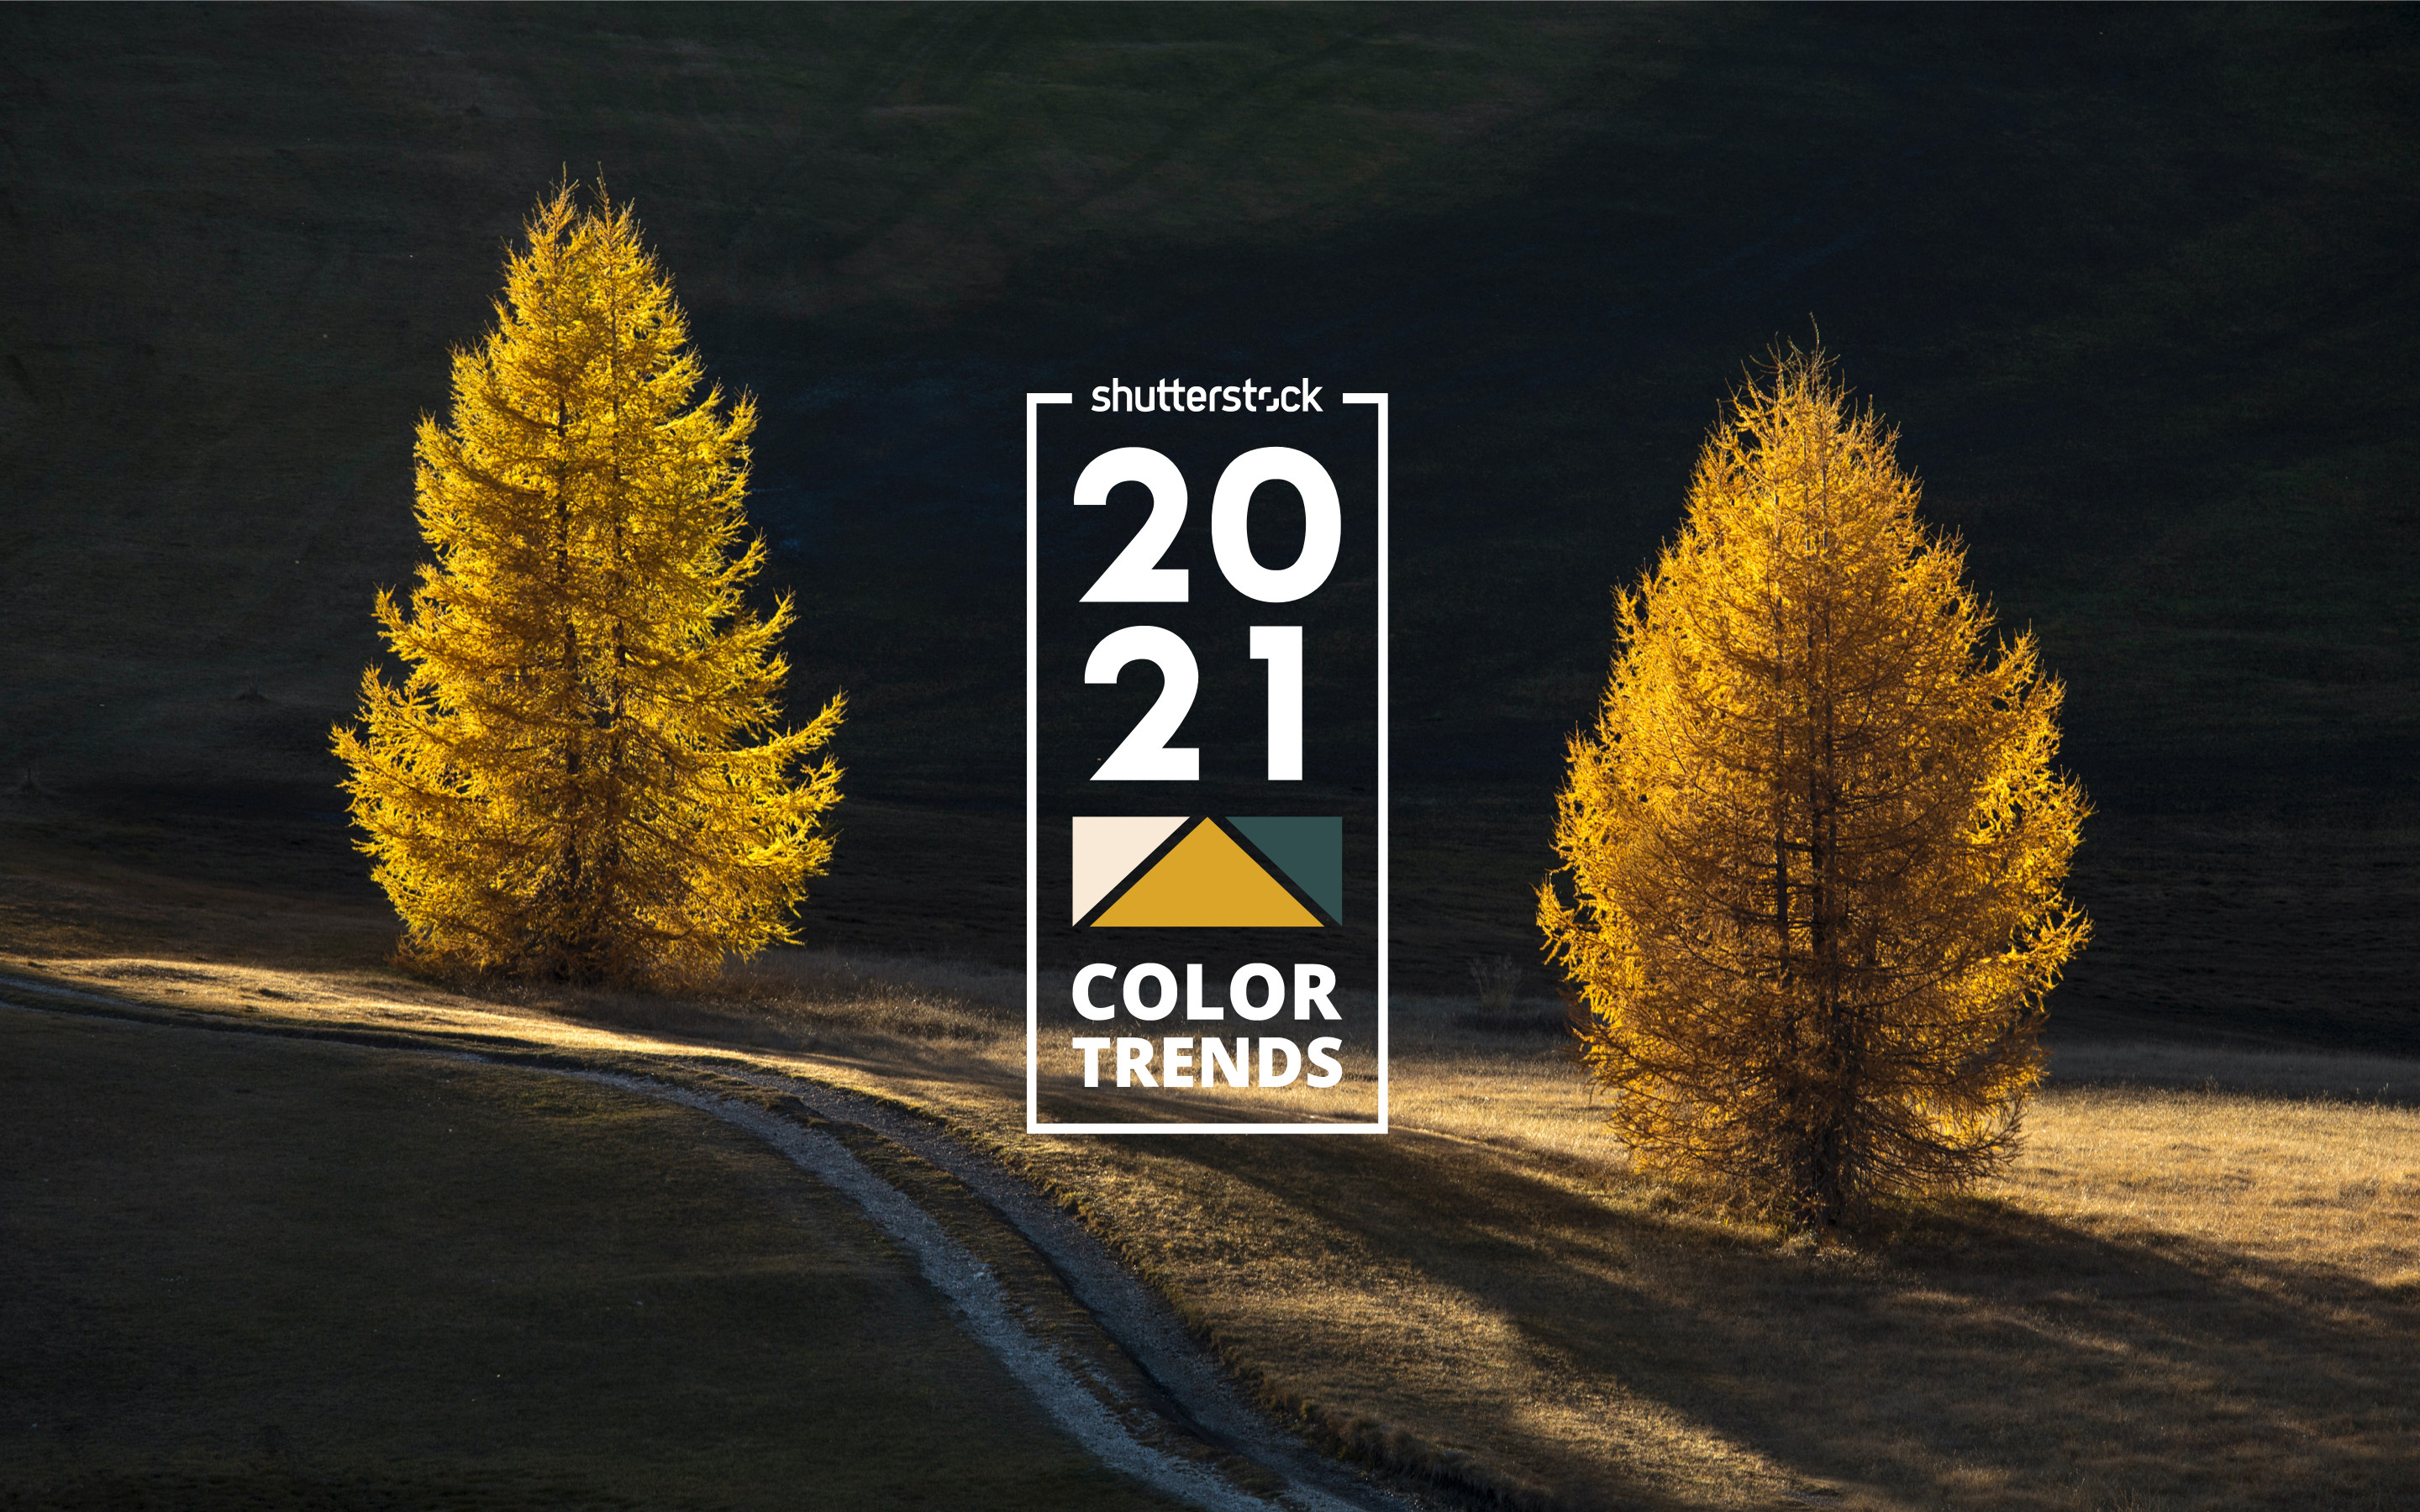 2021 Color Trends: The Year's Top Colors – Shutterstock